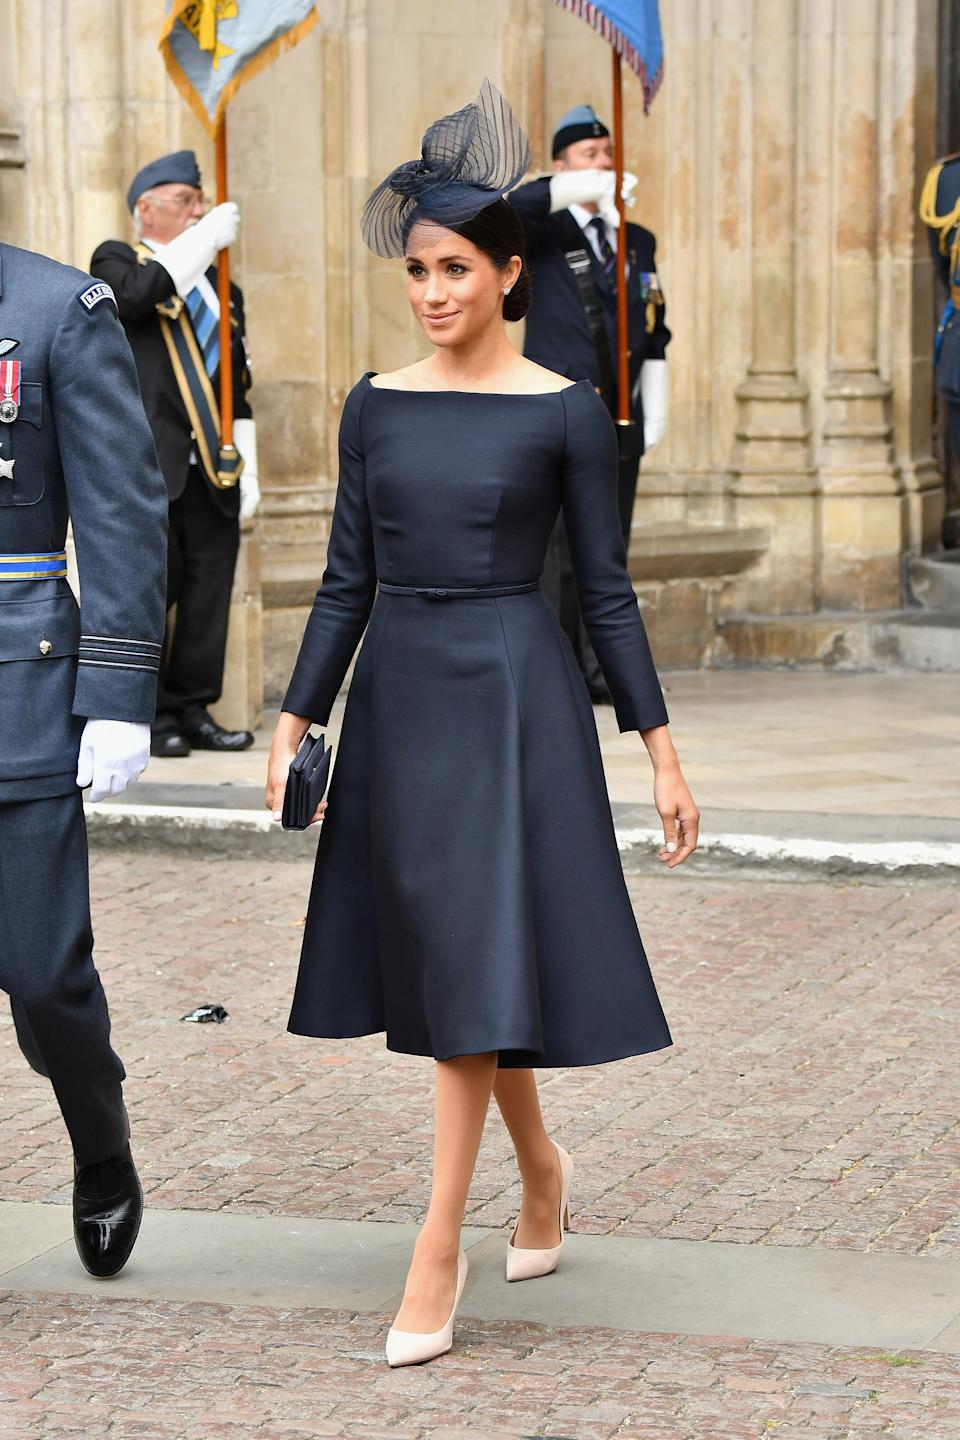 <p>For the RAF's centenary celebrations on July 10, the Duchess of Sussex opted for a bespoke navy-hued dress by Dior. She accessorised the look with a co-ordinating hat by Stephen Jones. [Photo: Getty] </p>